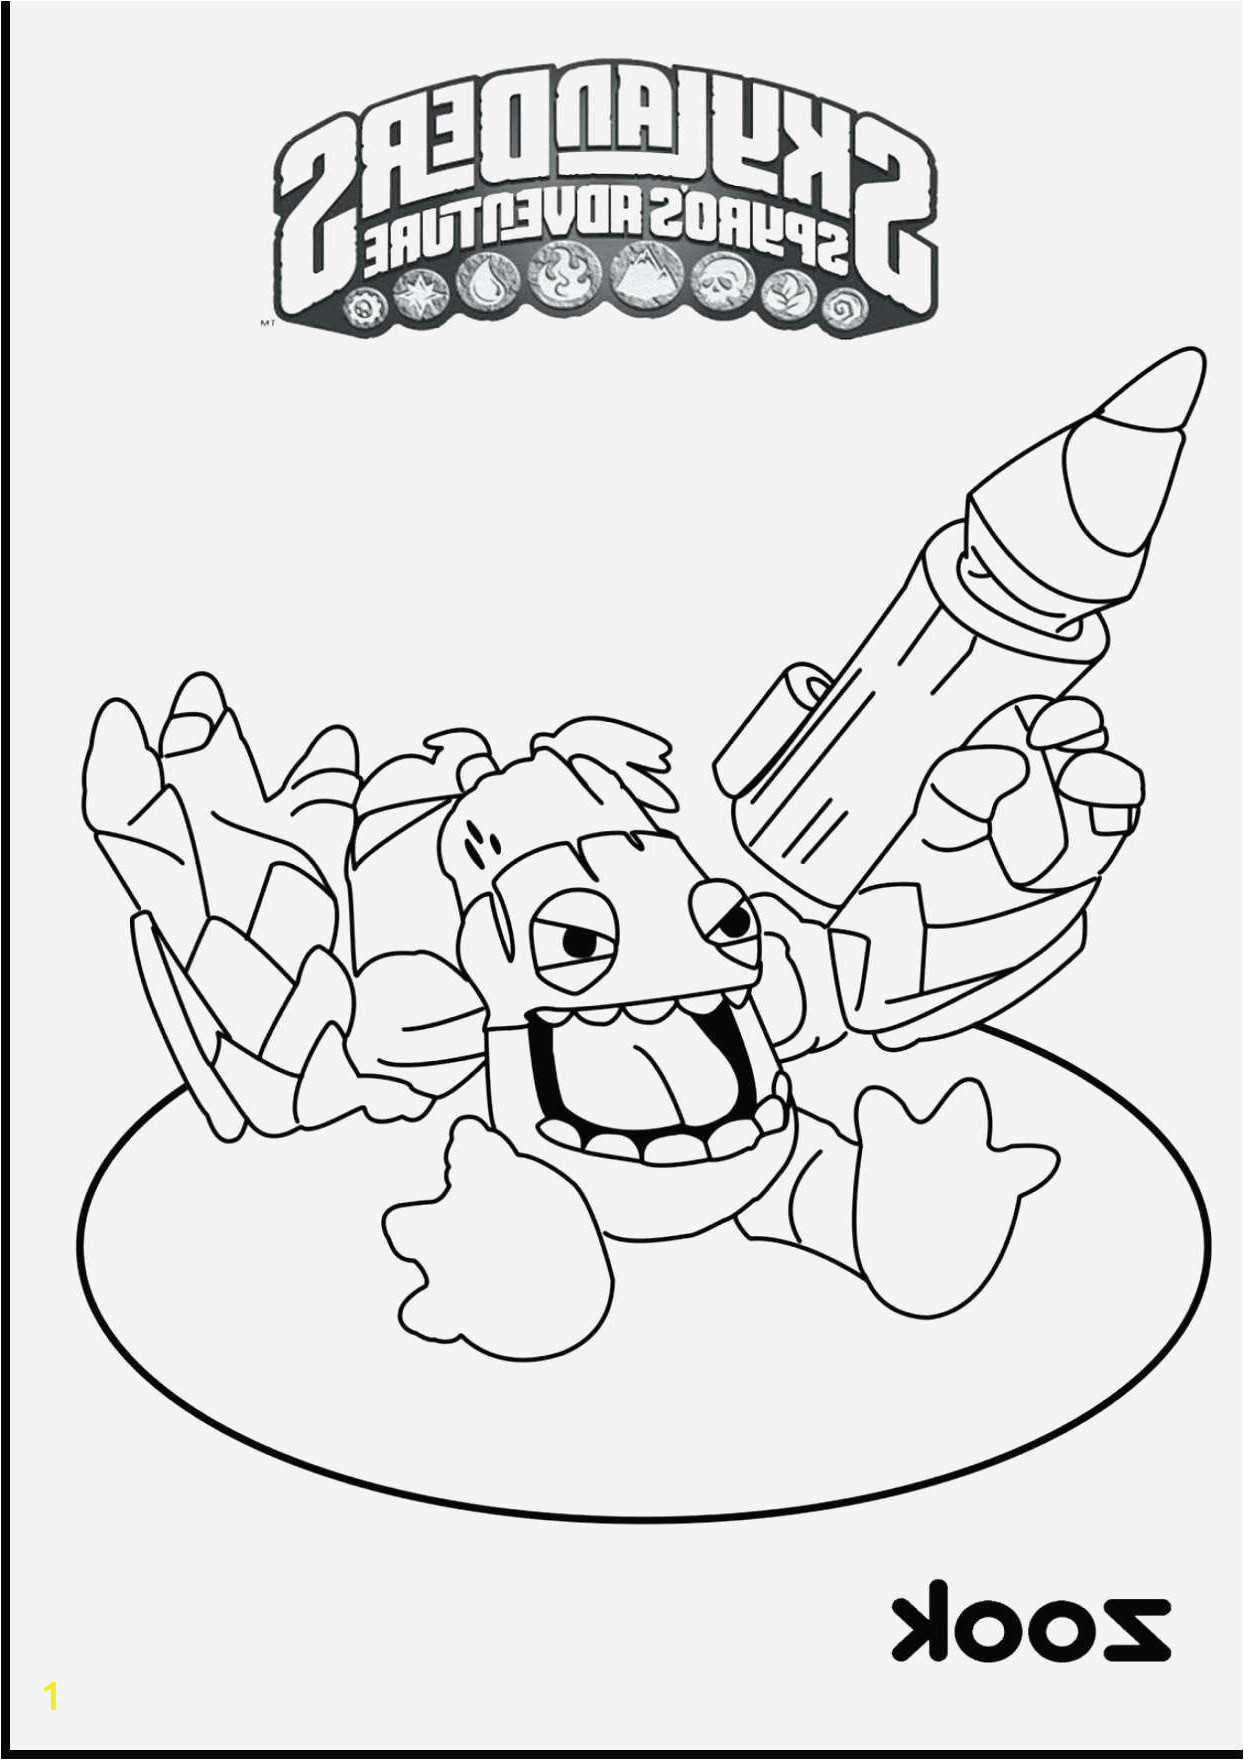 farm animals coloring picture cool images lovely printable coloring pages zoo animals of farm animals coloring picture